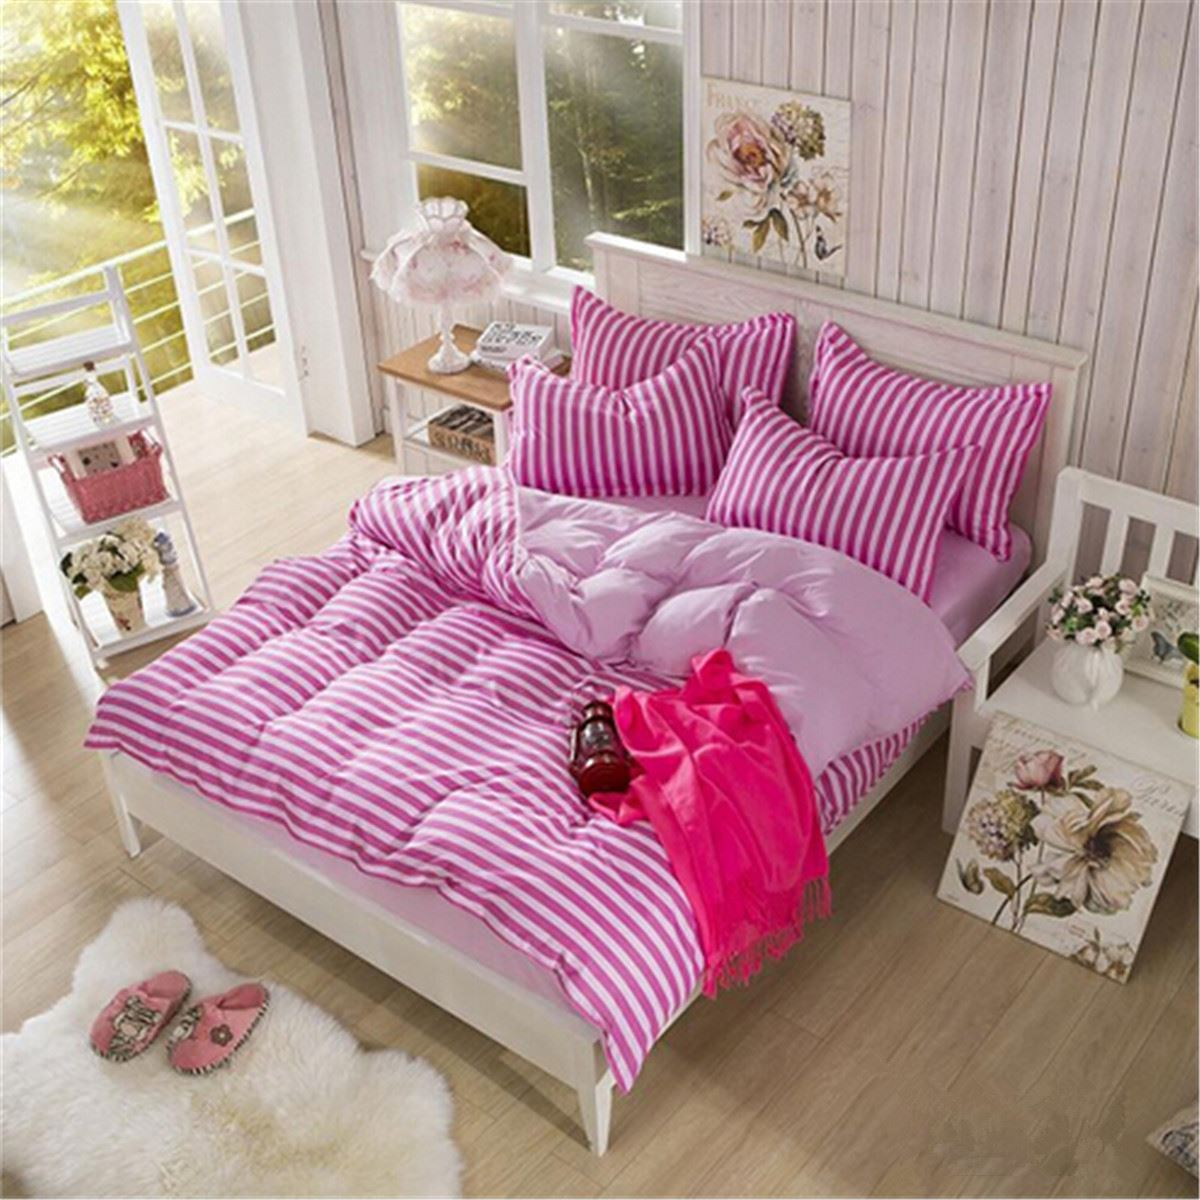 Bed sheet set with quilt - Korean Polyester Fiber Quilt Duvet Cover Pink Stripe Printed Bedding Set Bed Sheet Pillow Case Single